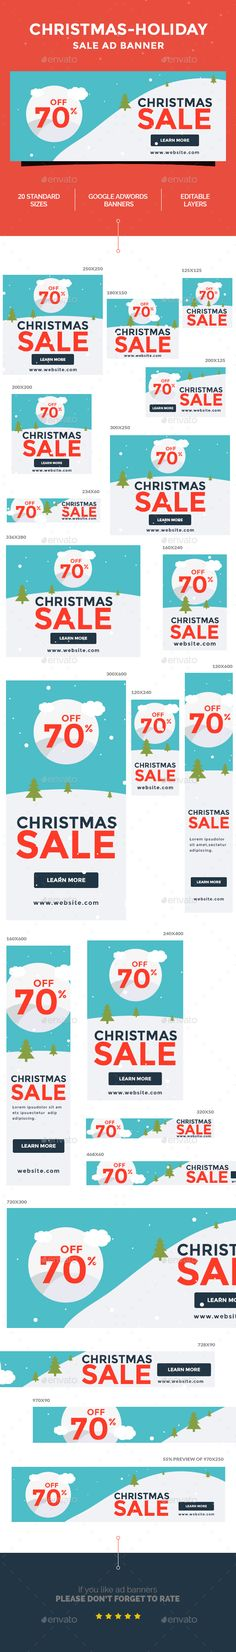 Christmas - Holiday Sale Ad Web Banner Template PSD #design #promotion Download: http://graphicriver.net/item/christmas-holiday-sale-ad-banner/14062891?ref=ksioks